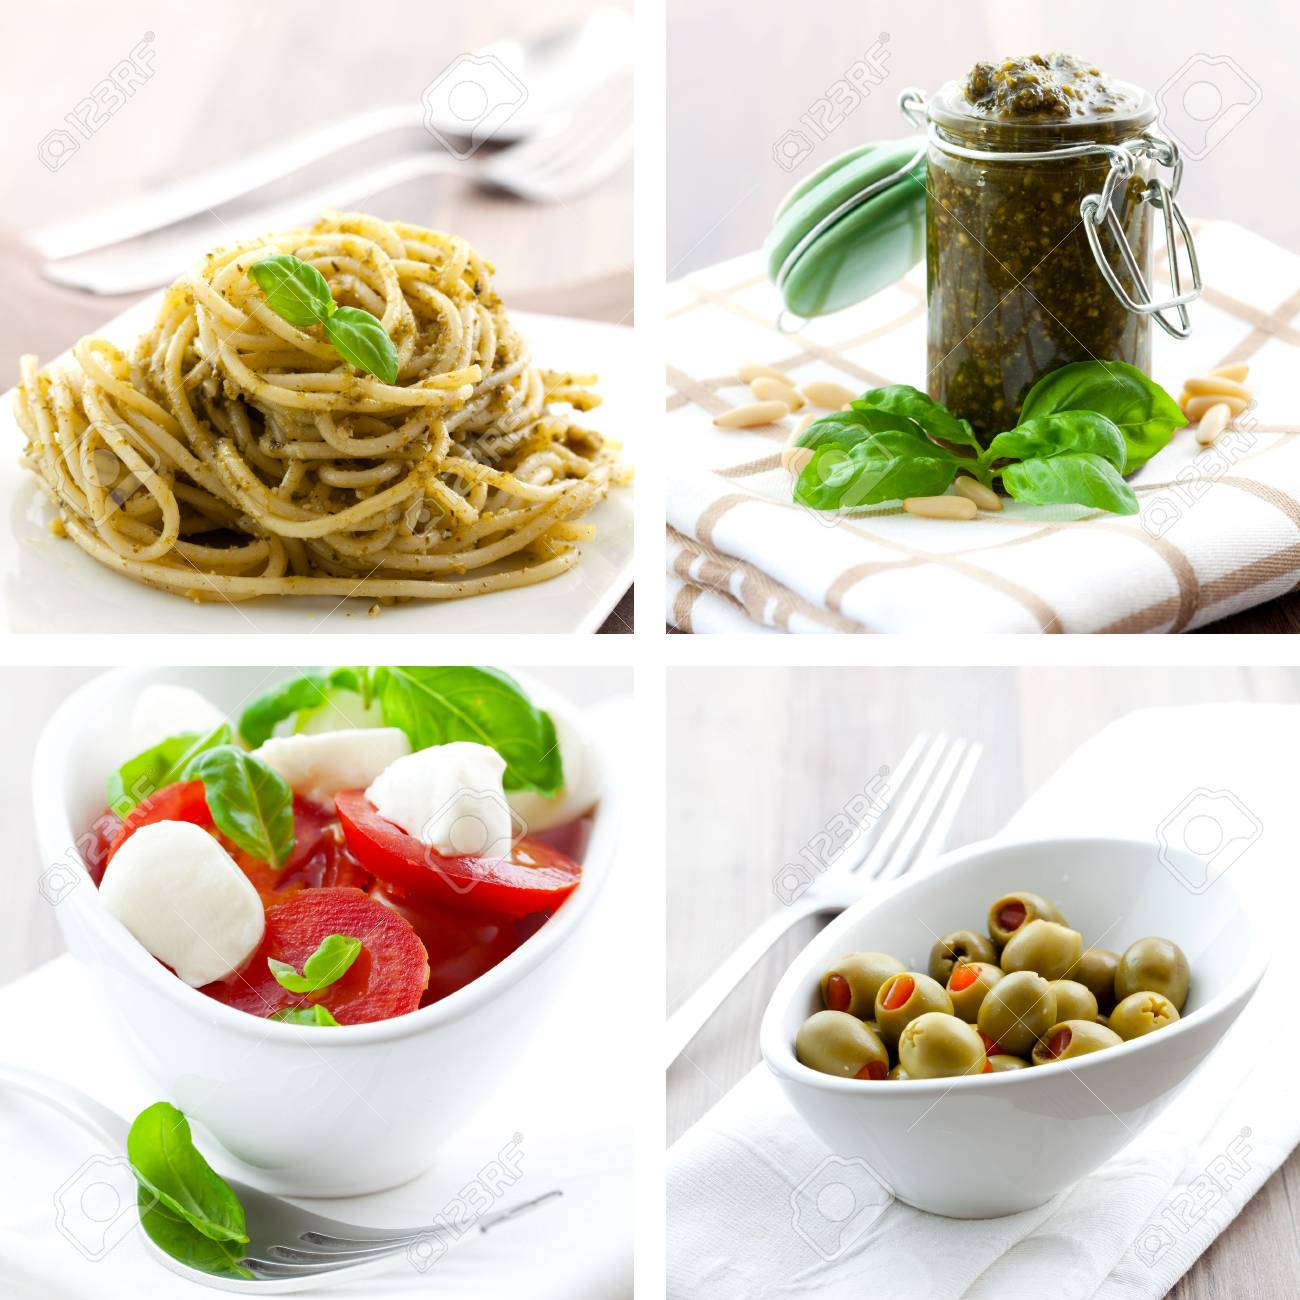 collage of four pictures of italien food - 7921779